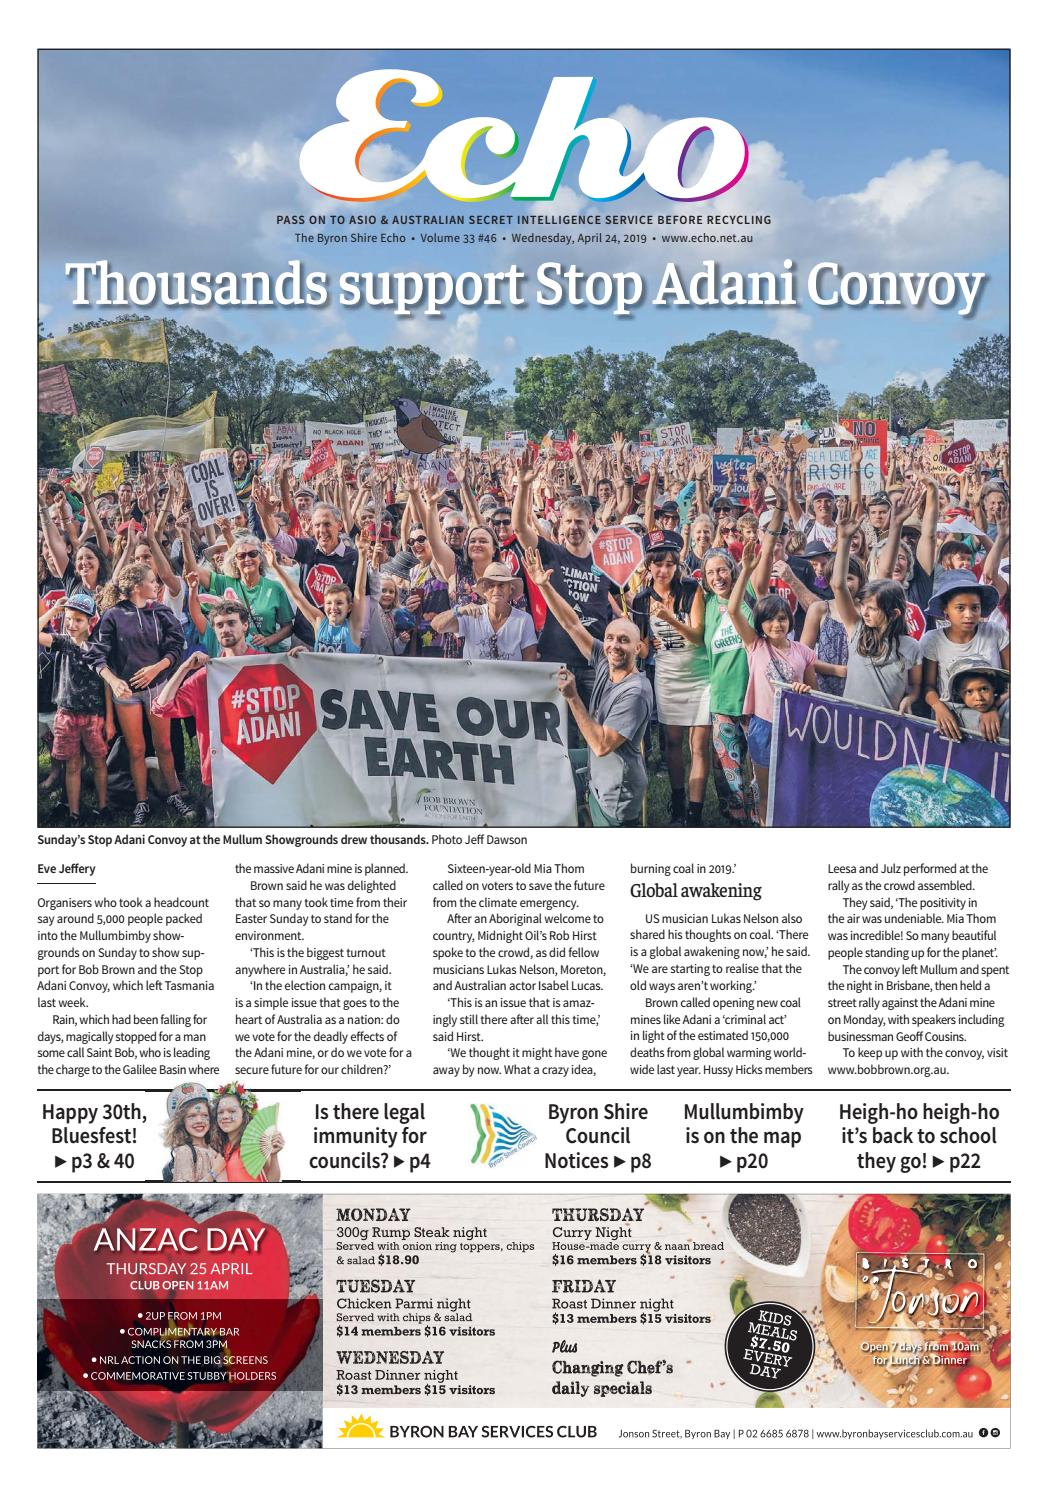 The Byron Shire Echo – Issue 33 46 – April 24, 2019 by Echo